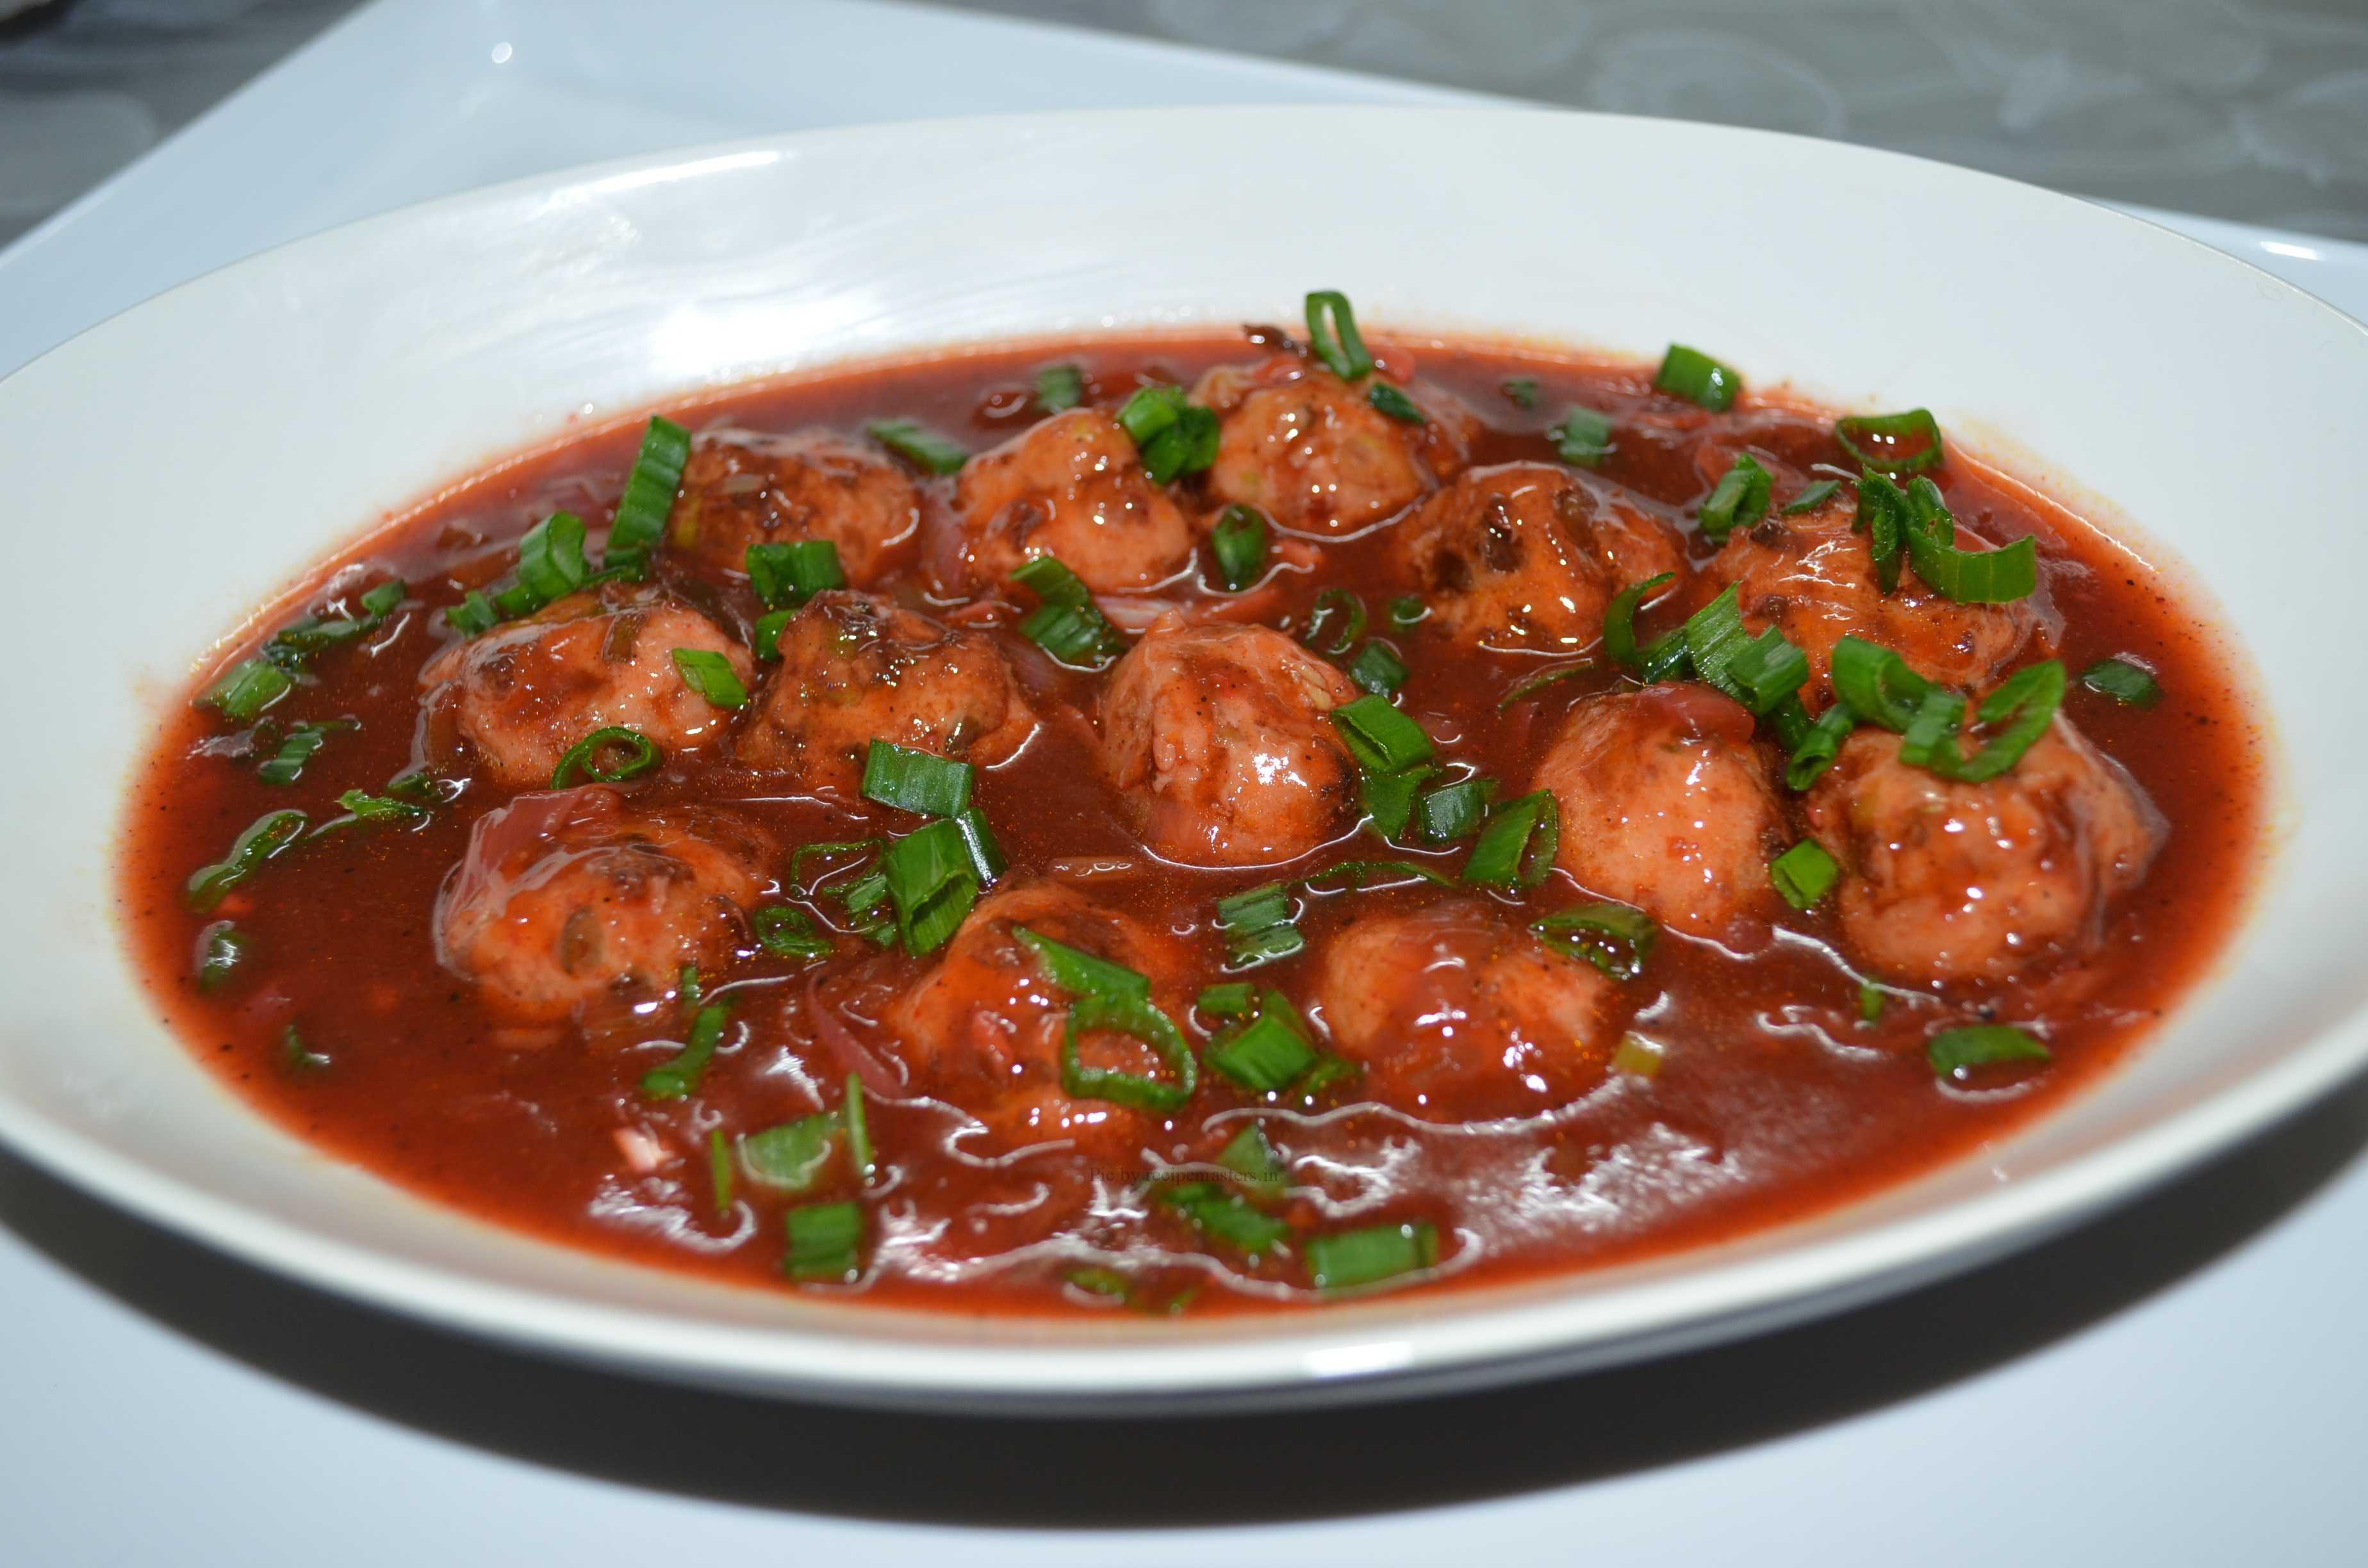 Chicken balls in hot sauce by rahat zaid recipe masters recipe image forumfinder Image collections